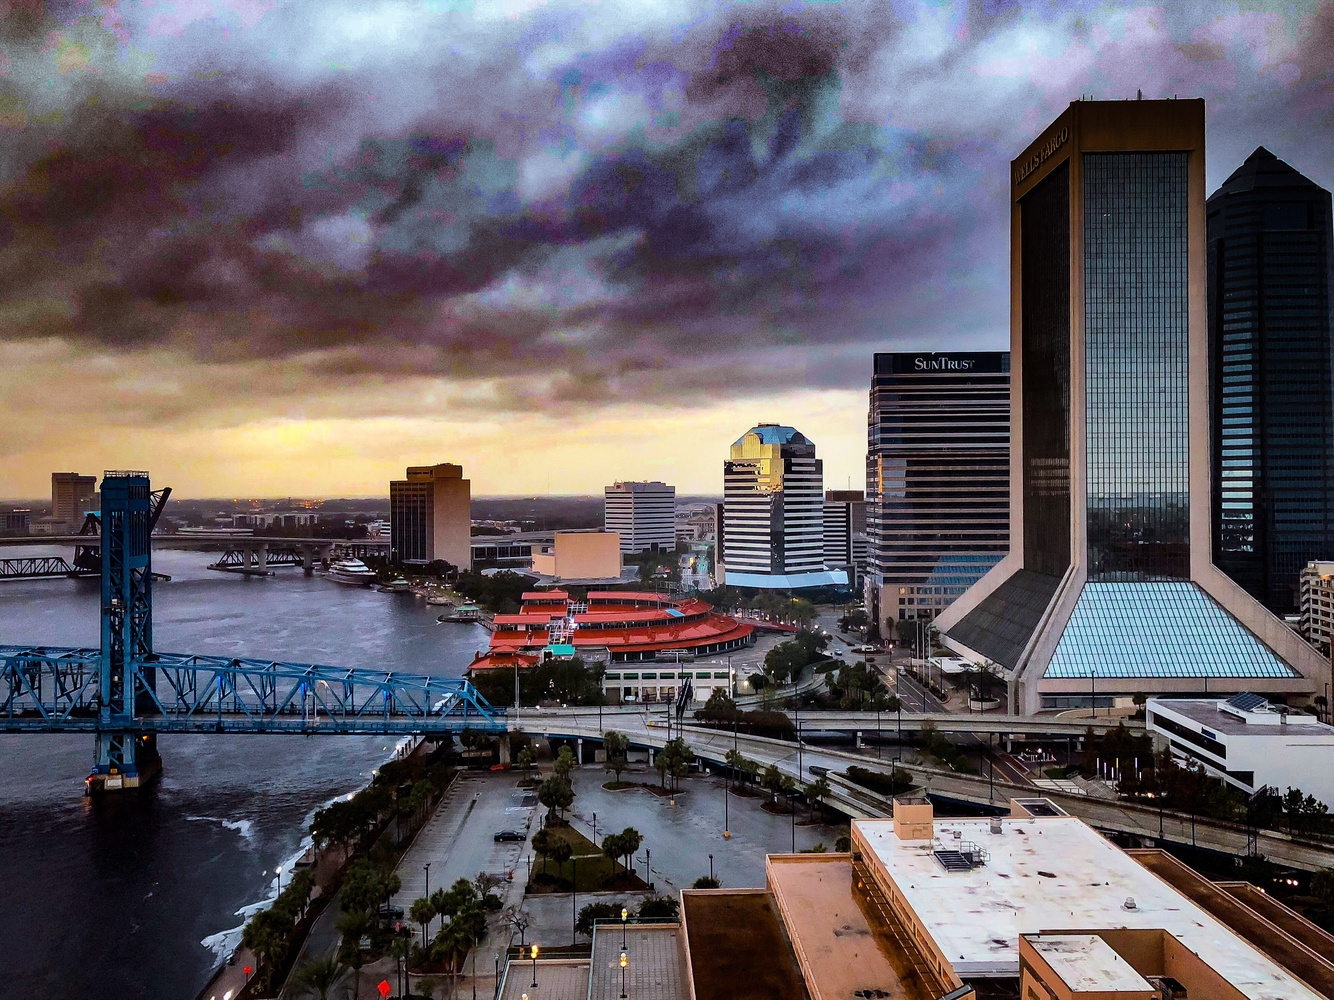 Storm Rolling In Over JAX by Cliff Billingsley